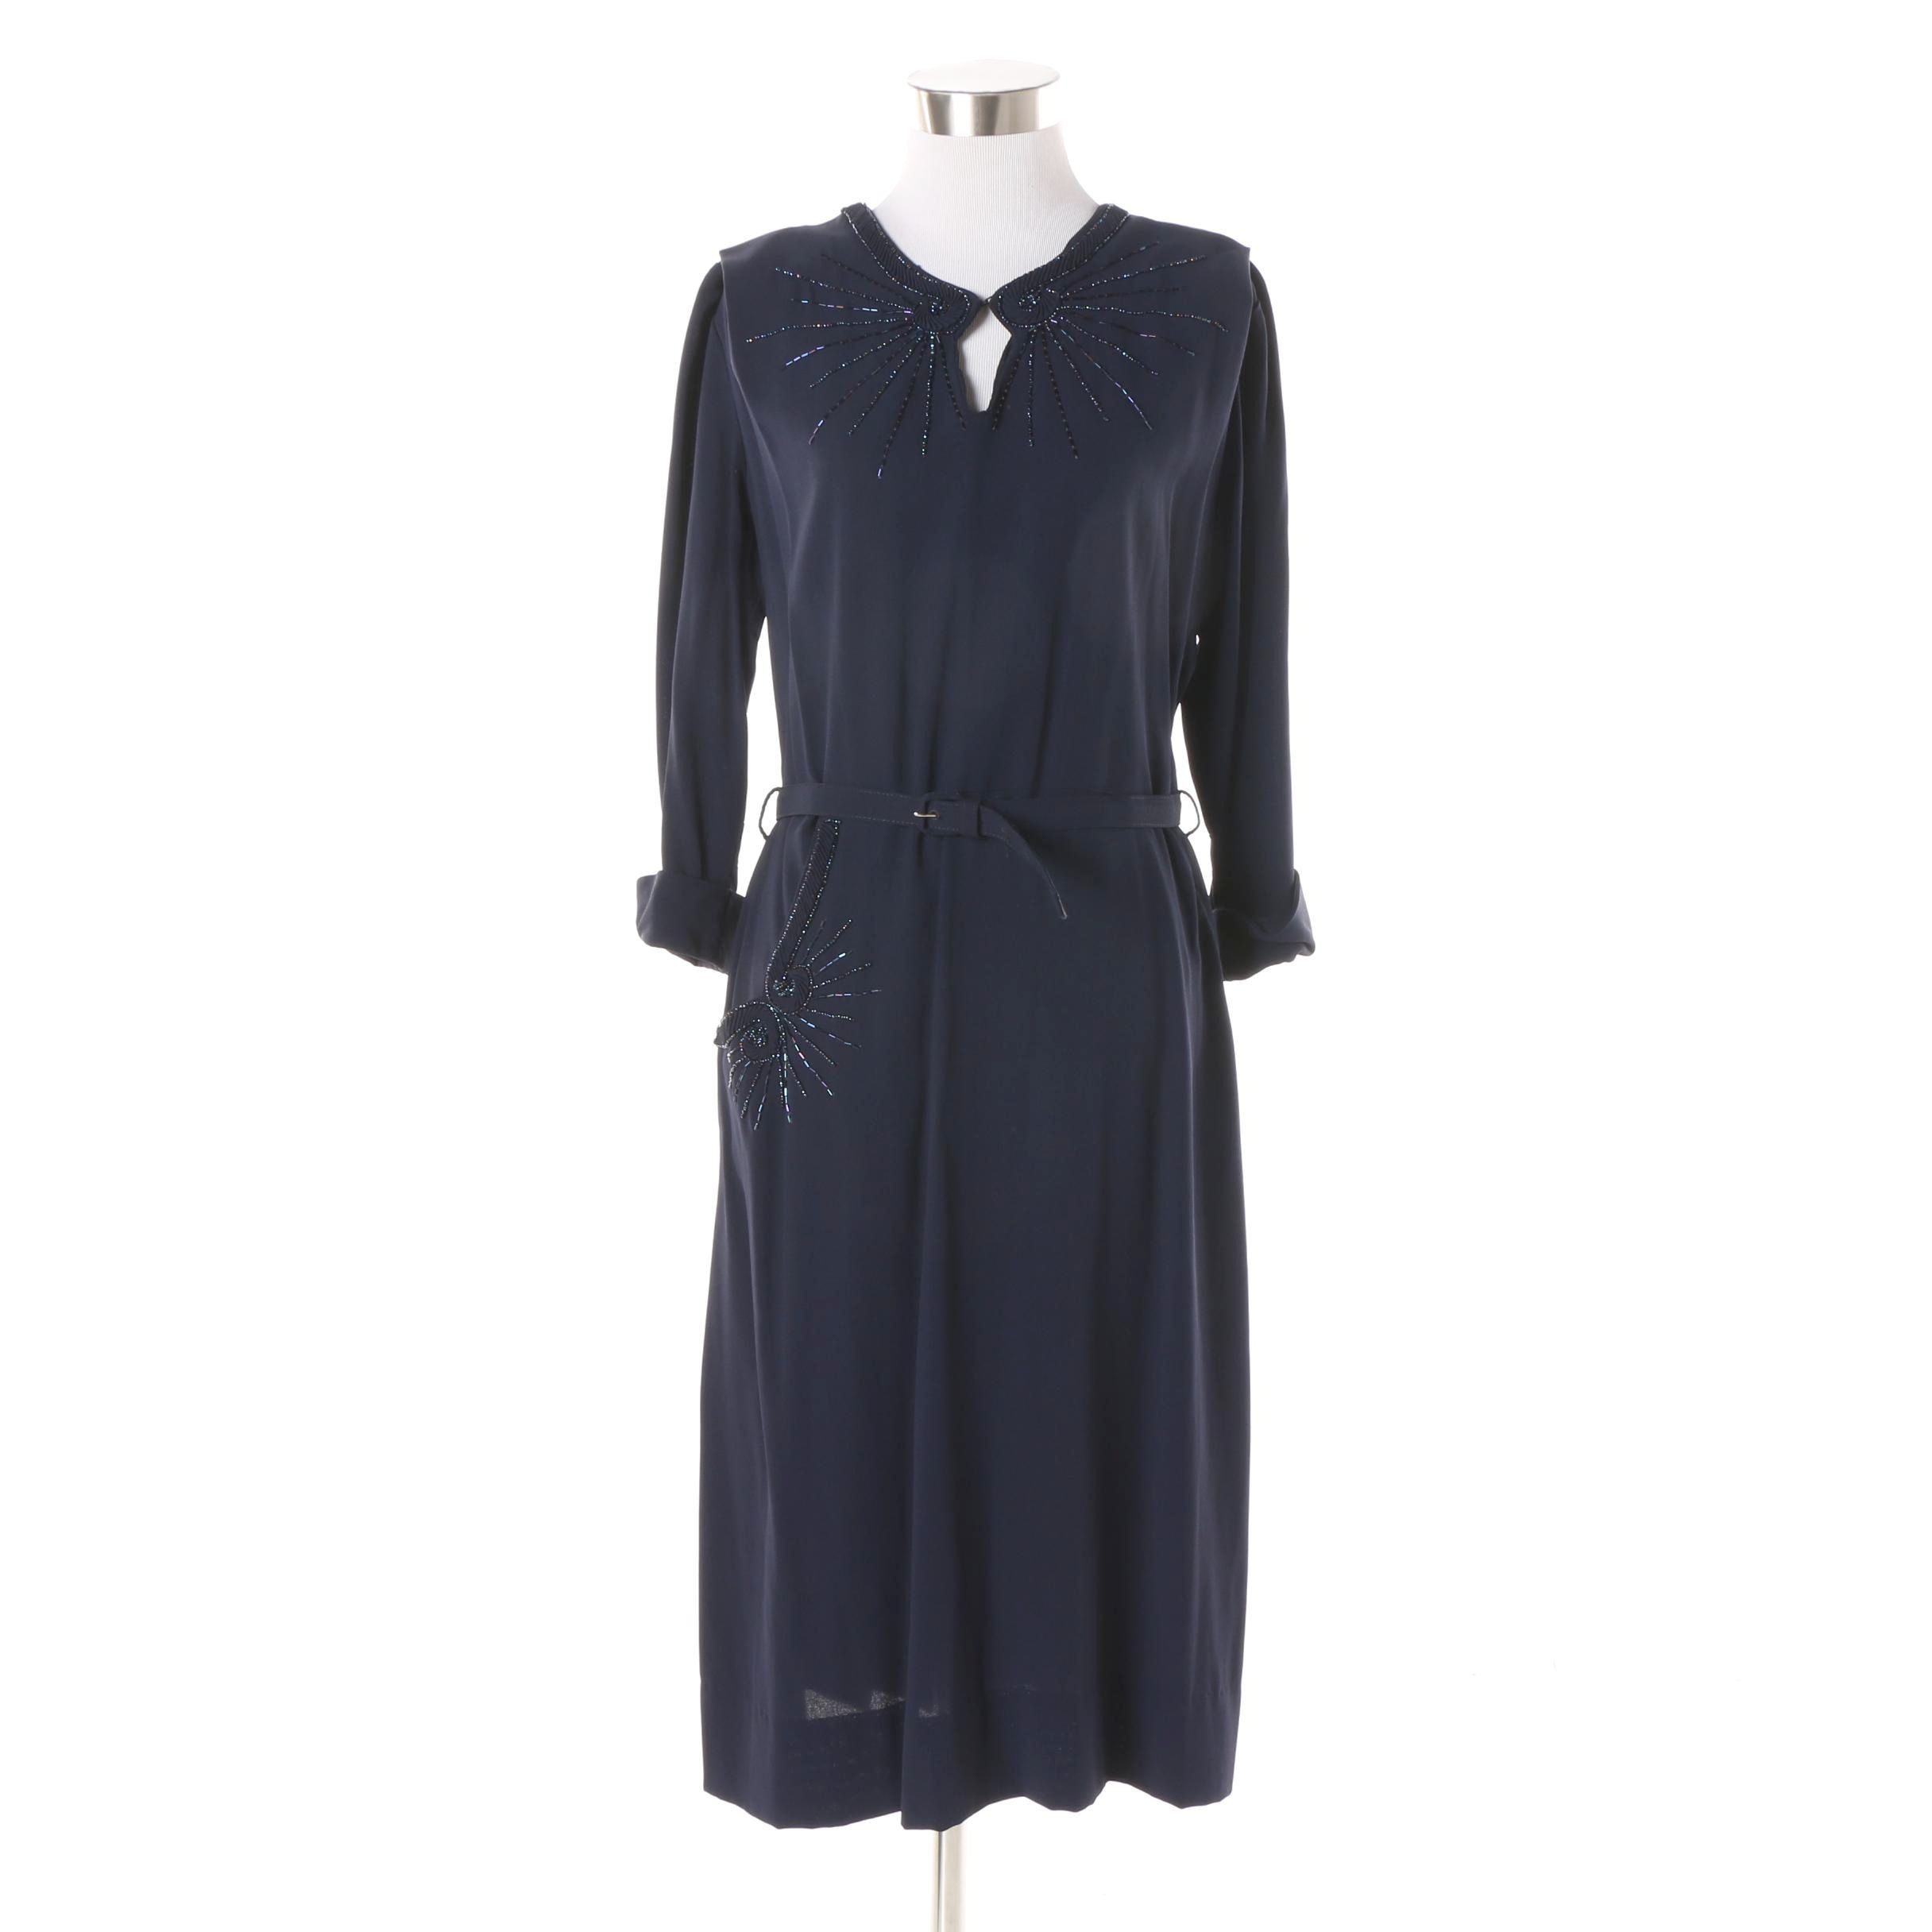 1950s Vintage Form Fit Dresses New York Navy Blue Bead Accented Cocktail Dress